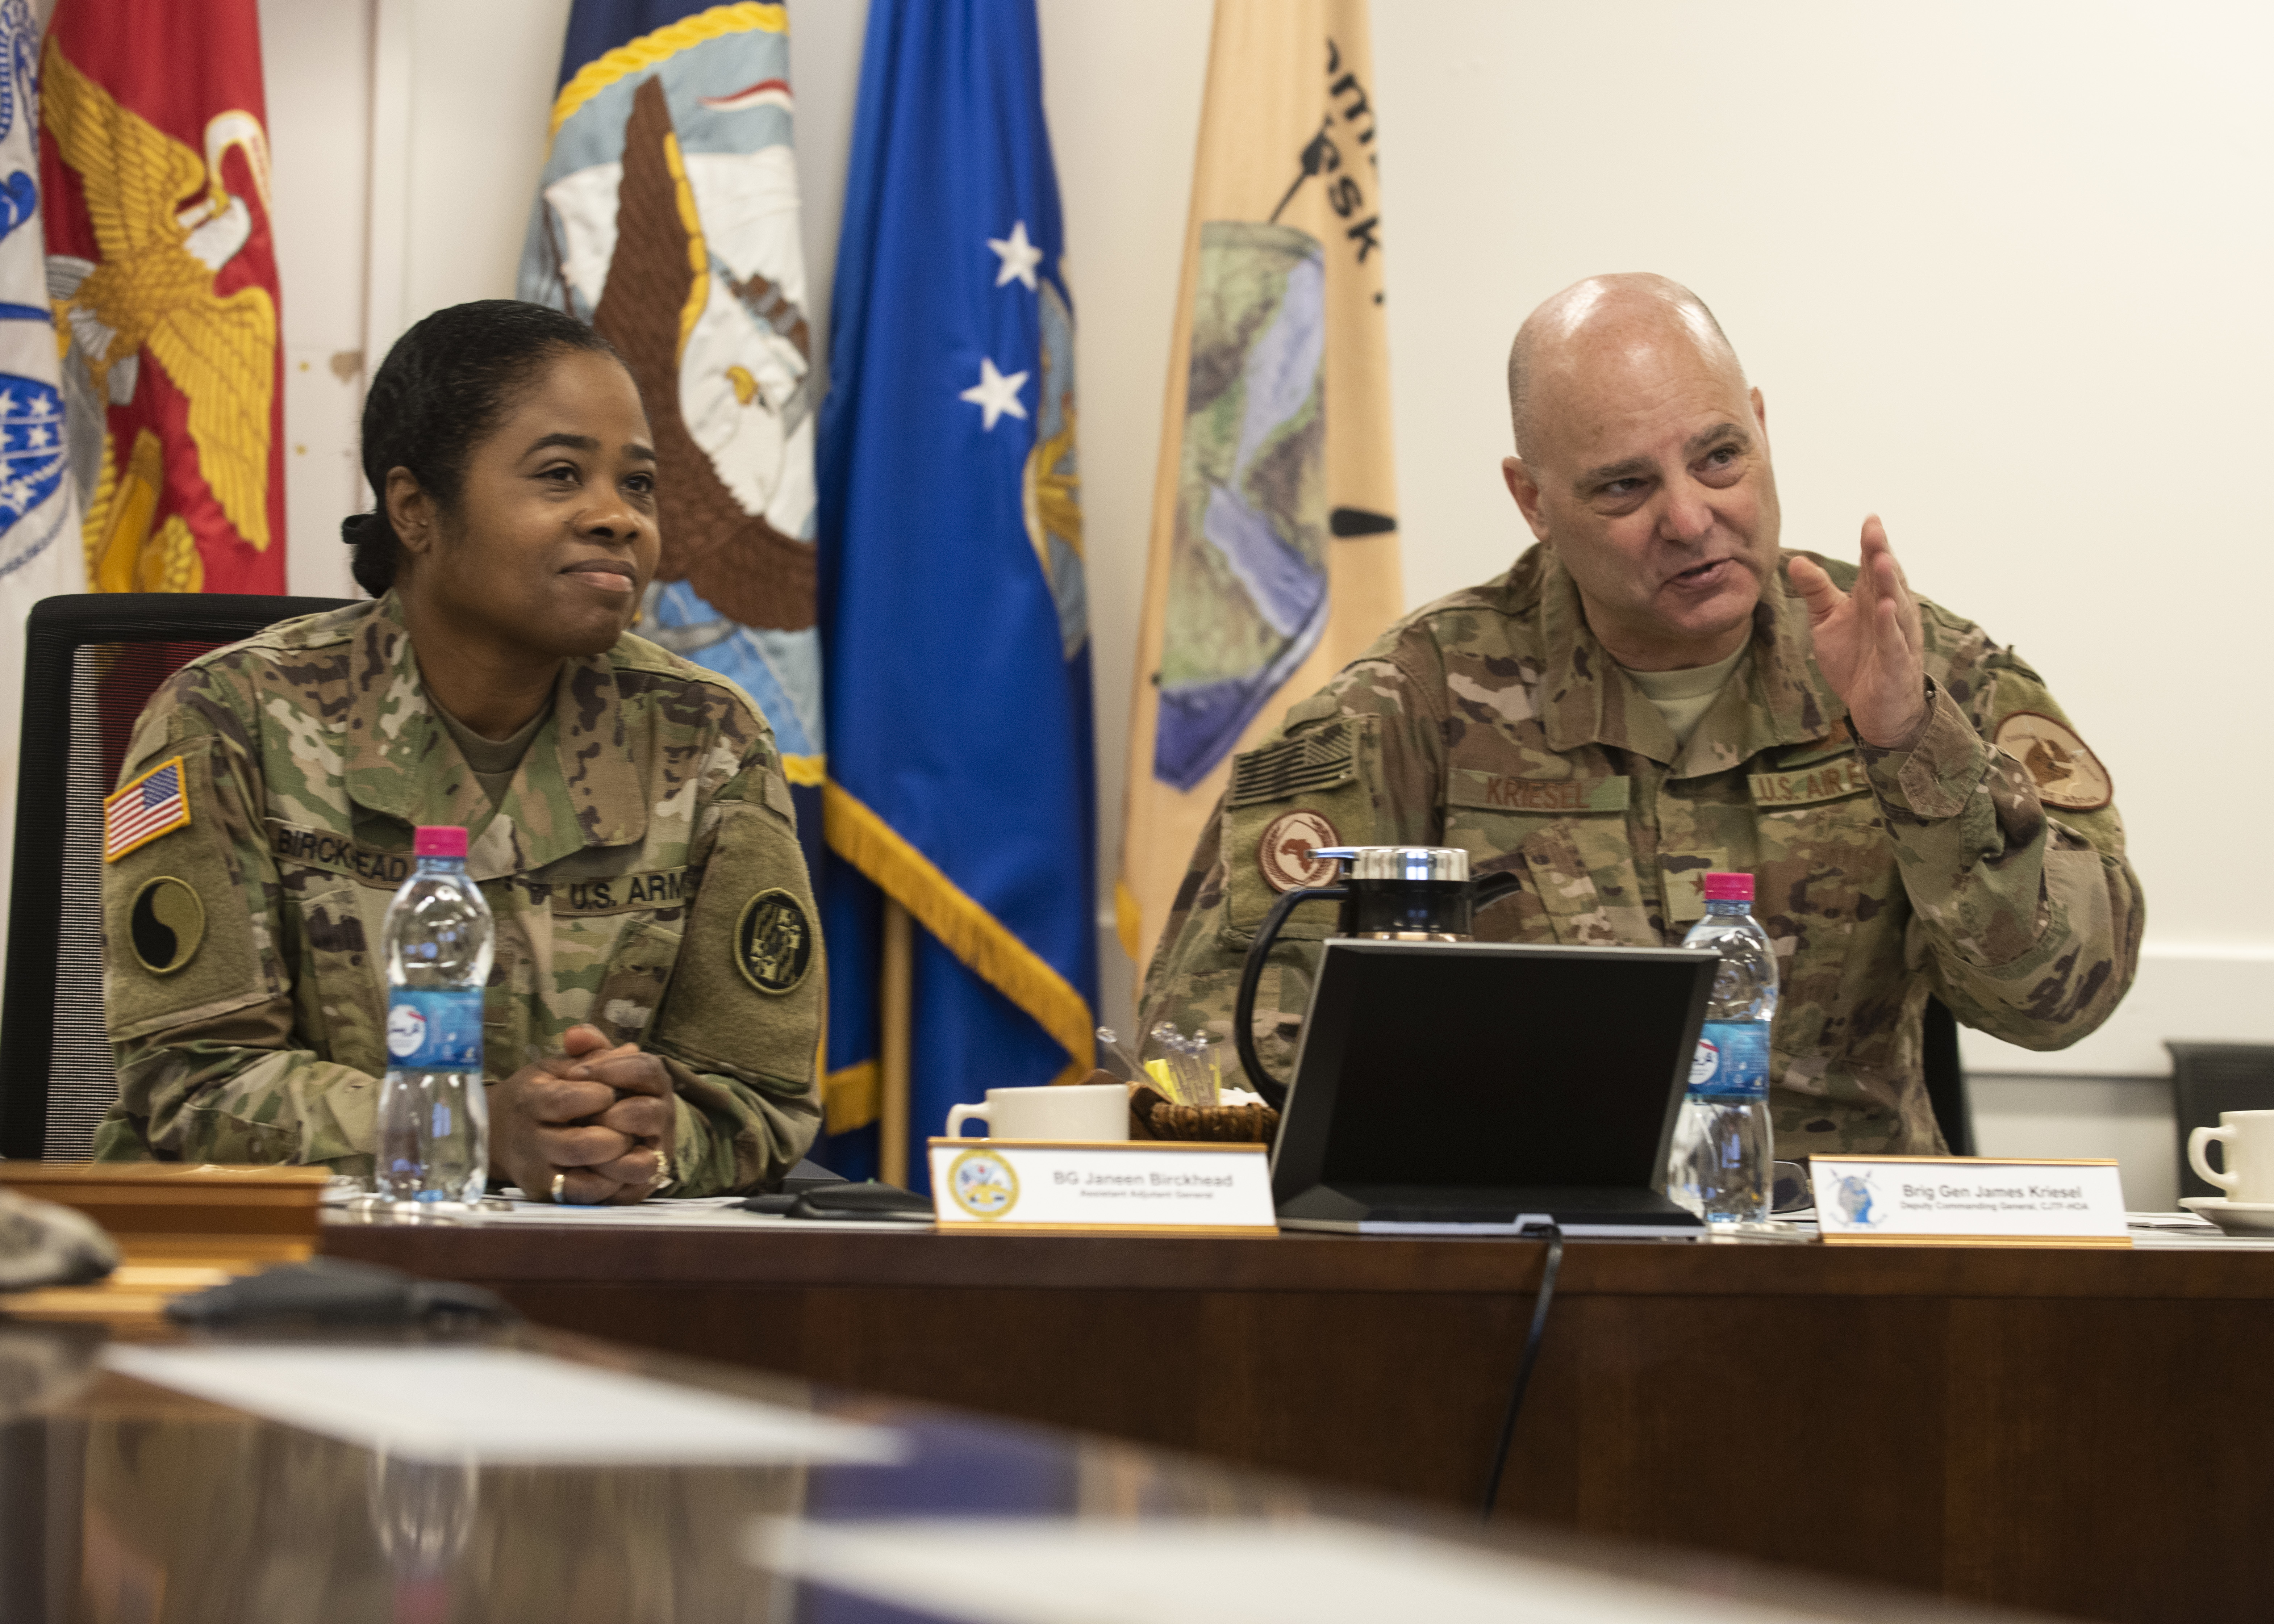 U.S. Air Force Brig. Gen. James R. Kriesel, right, deputy commanding general of Combined Joint Task Force-Horn of Africa (CJTF-HOA), briefs U.S. Army Brig. Gen. Janeen Birckhead, assistant adjutant general for the Maryland Army National Guard, during her visit to Camp Lemonnier, Djibouti, May 20, 2019. For more than seven years, the U.S. Army National Guard has been providing information operations detachments on nine-month rotations to CJTF-HOA. (U.S. Air Force Photo by Staff Sgt. Franklin R. Ramos)